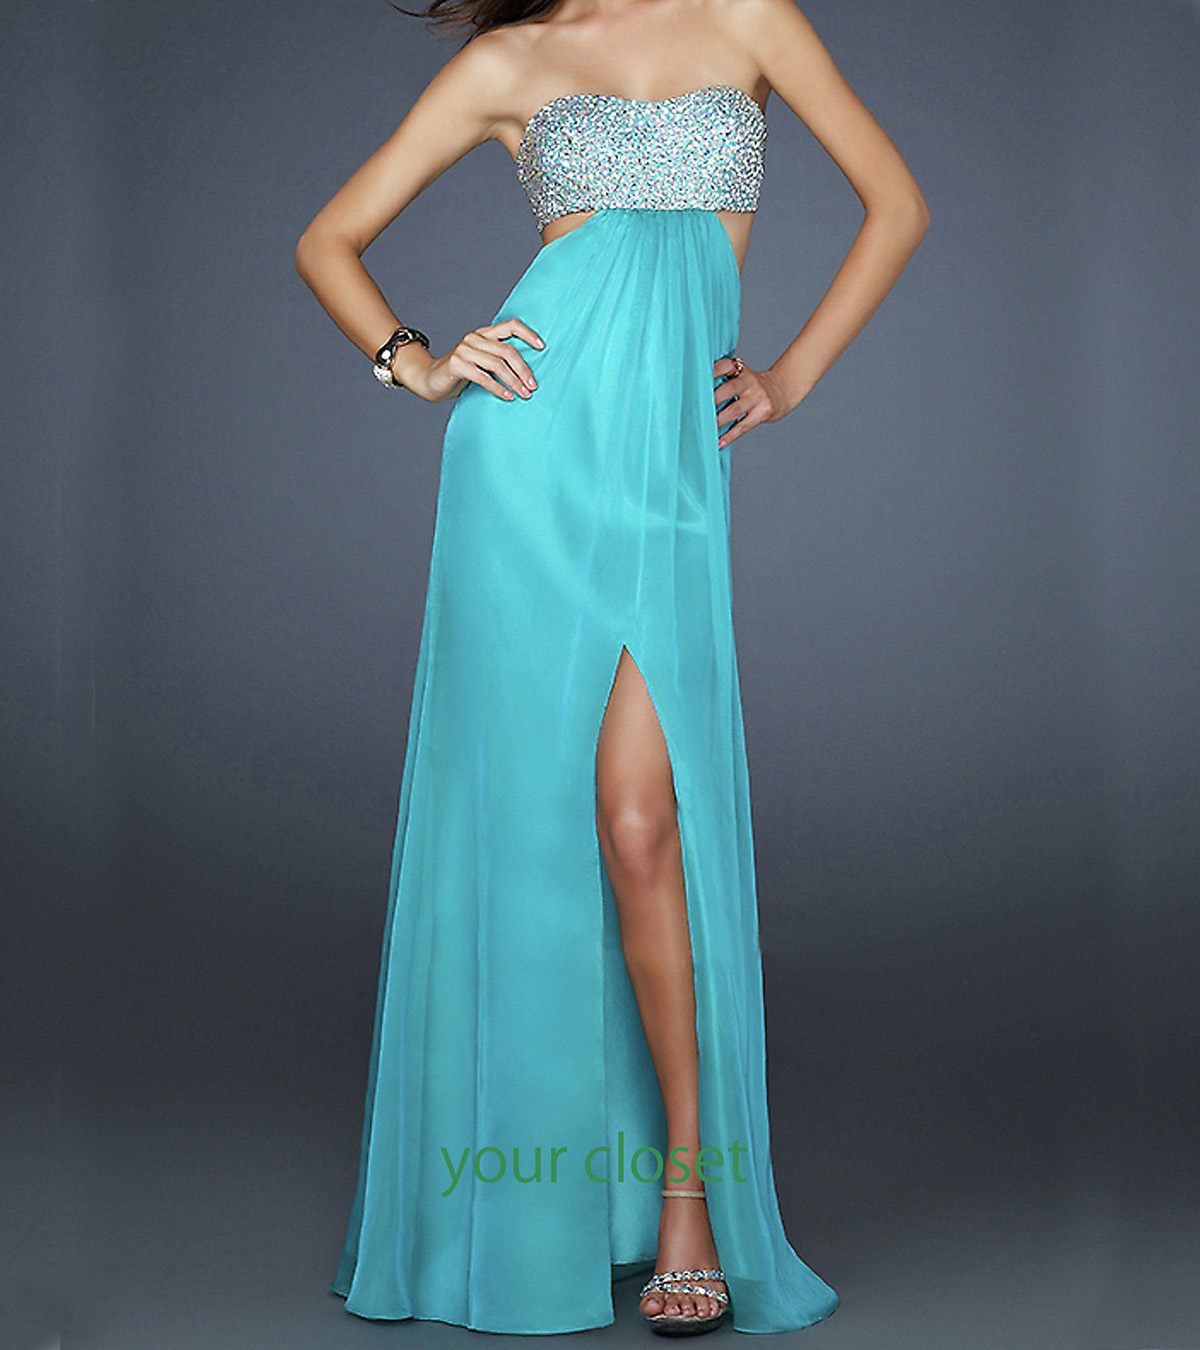 Prom Dresses Uk Next Day Delivery